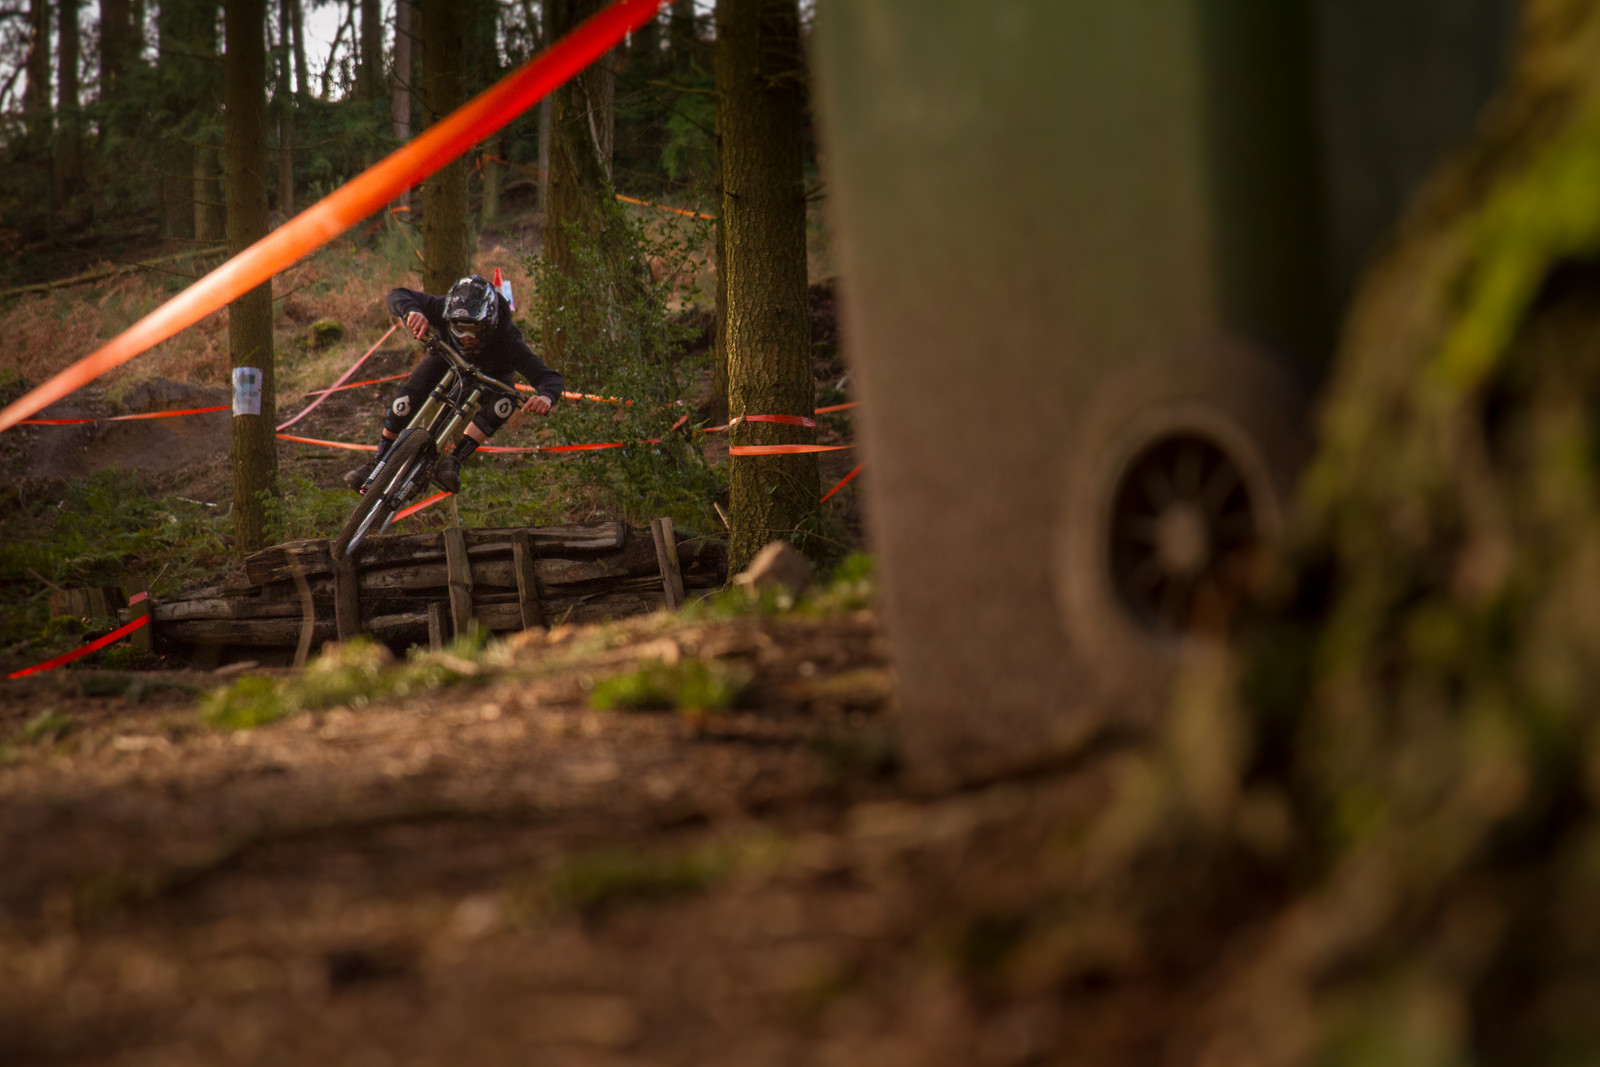 George Turnbull pinning it! - Visual Elements - Mountain Biking Pictures - Vital MTB